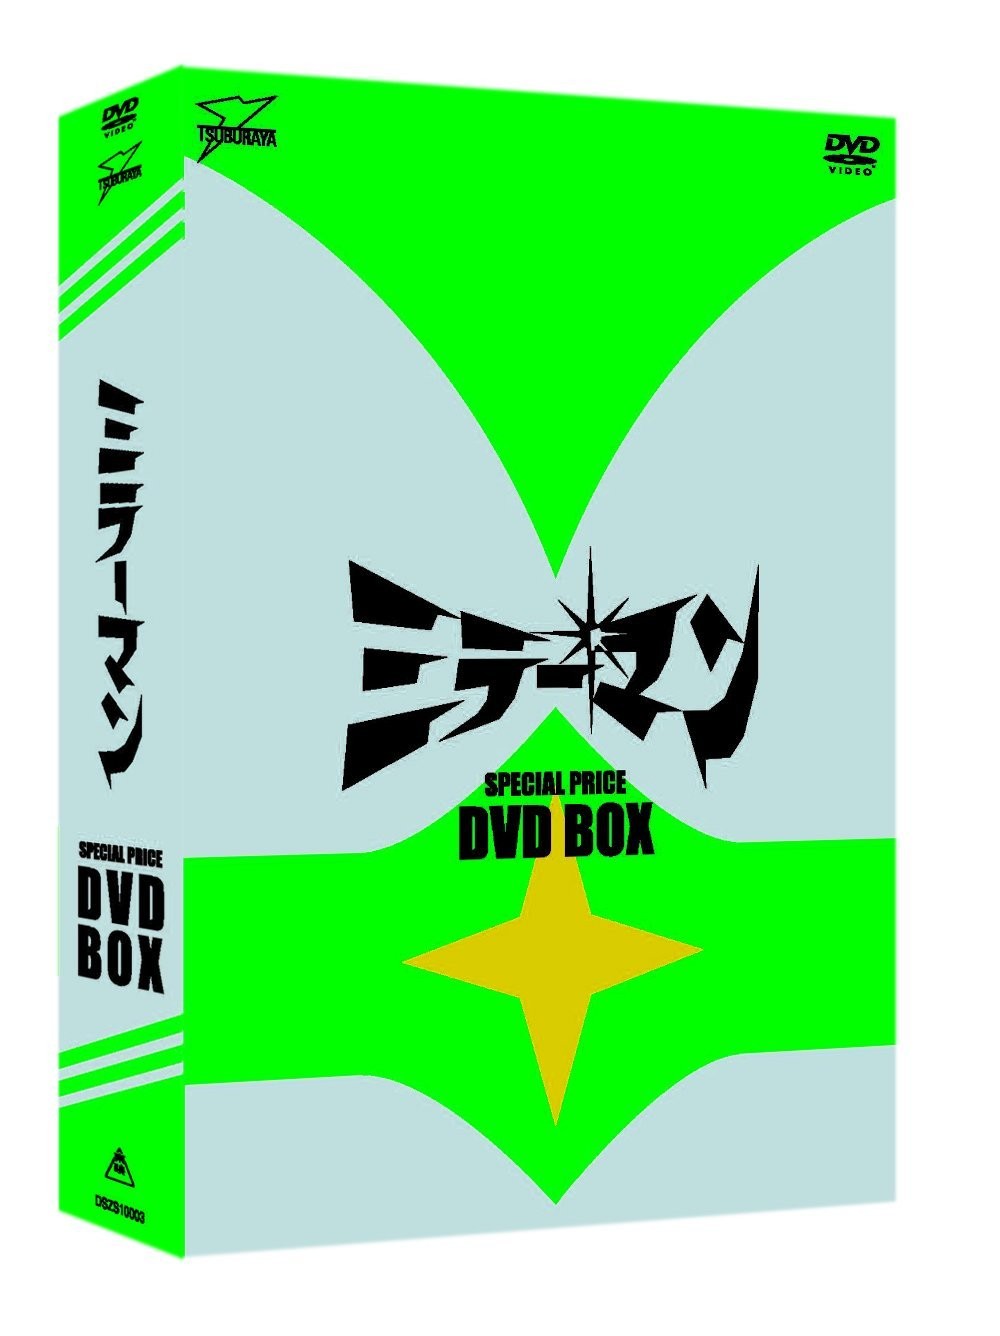 Mirrorman Dvd Box Revealed Tokusatsu Community Of The Philippines My Icon Rakutencouk Shopping Short Circuit Nova Labs Kids Tshirt 1971 72 Tsuburaya Series Mirror Man Would Have A Set For 23976 To Be Released This March92016 Is Aired On Fuji Tv Every Sundays